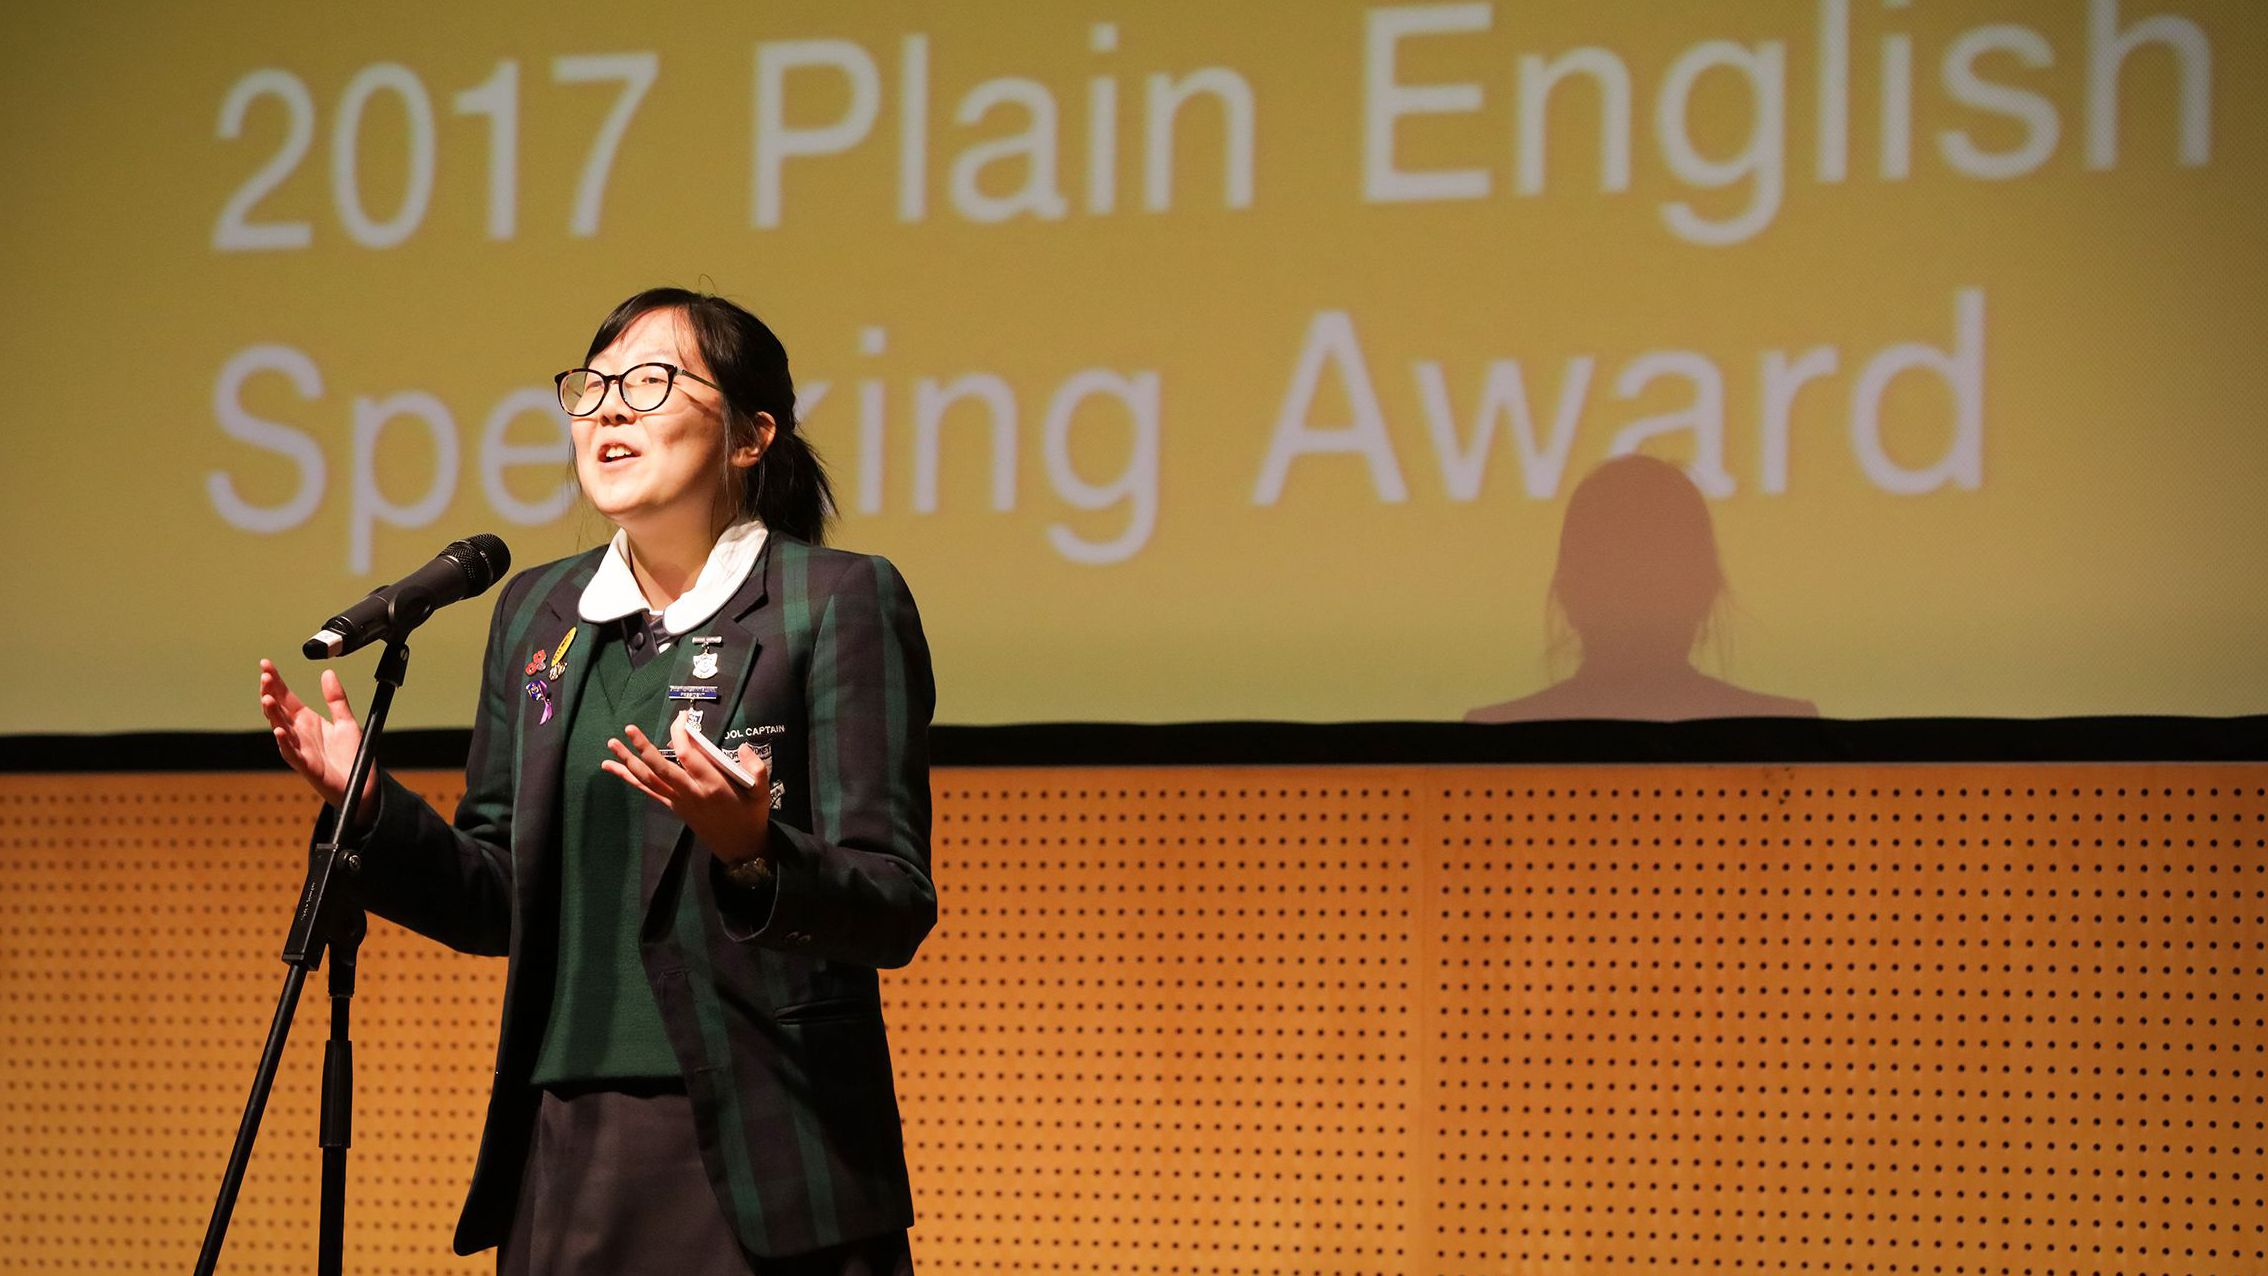 NSW Plain English Speaking Award 2020 Final